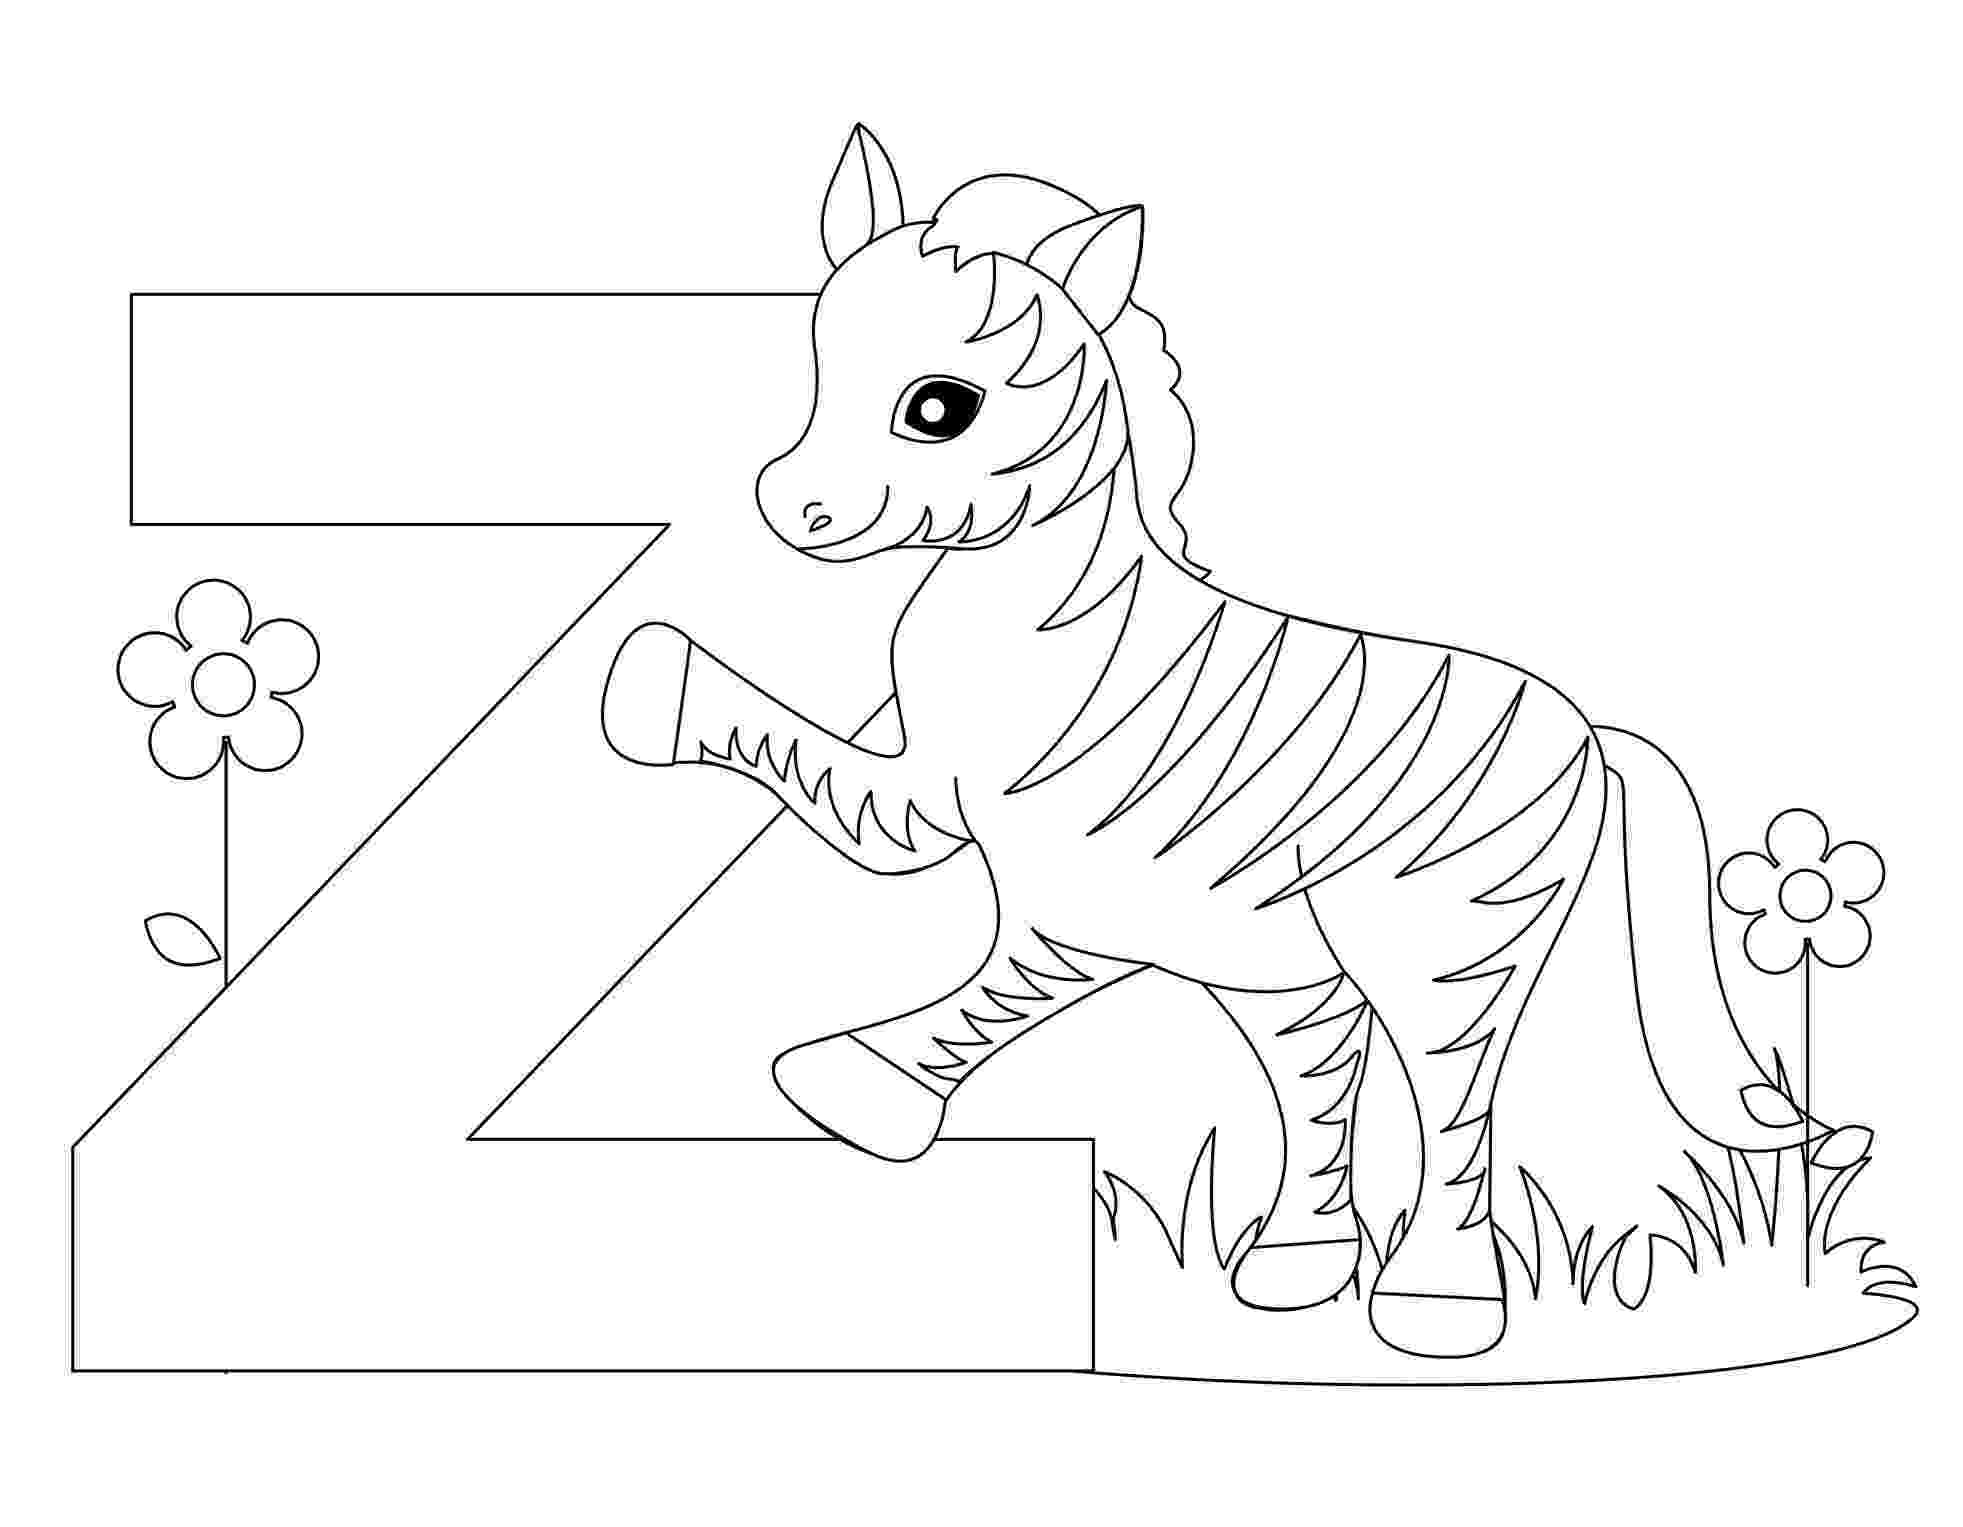 abc coloring book download letter g alphabet coloring pages 3 free printable book coloring abc download